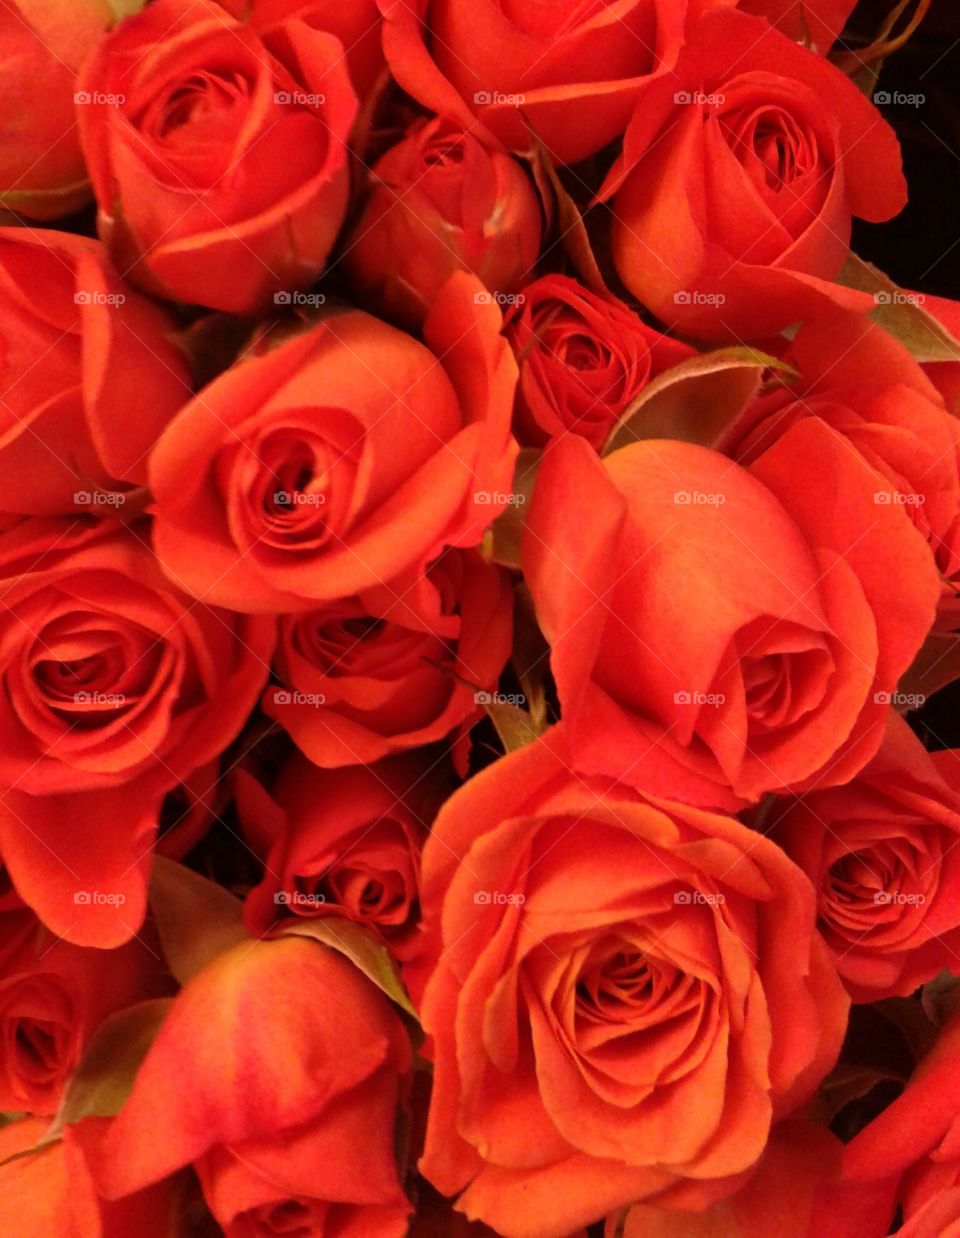 Passionate Flower. Red roses will make most women deeply moved.